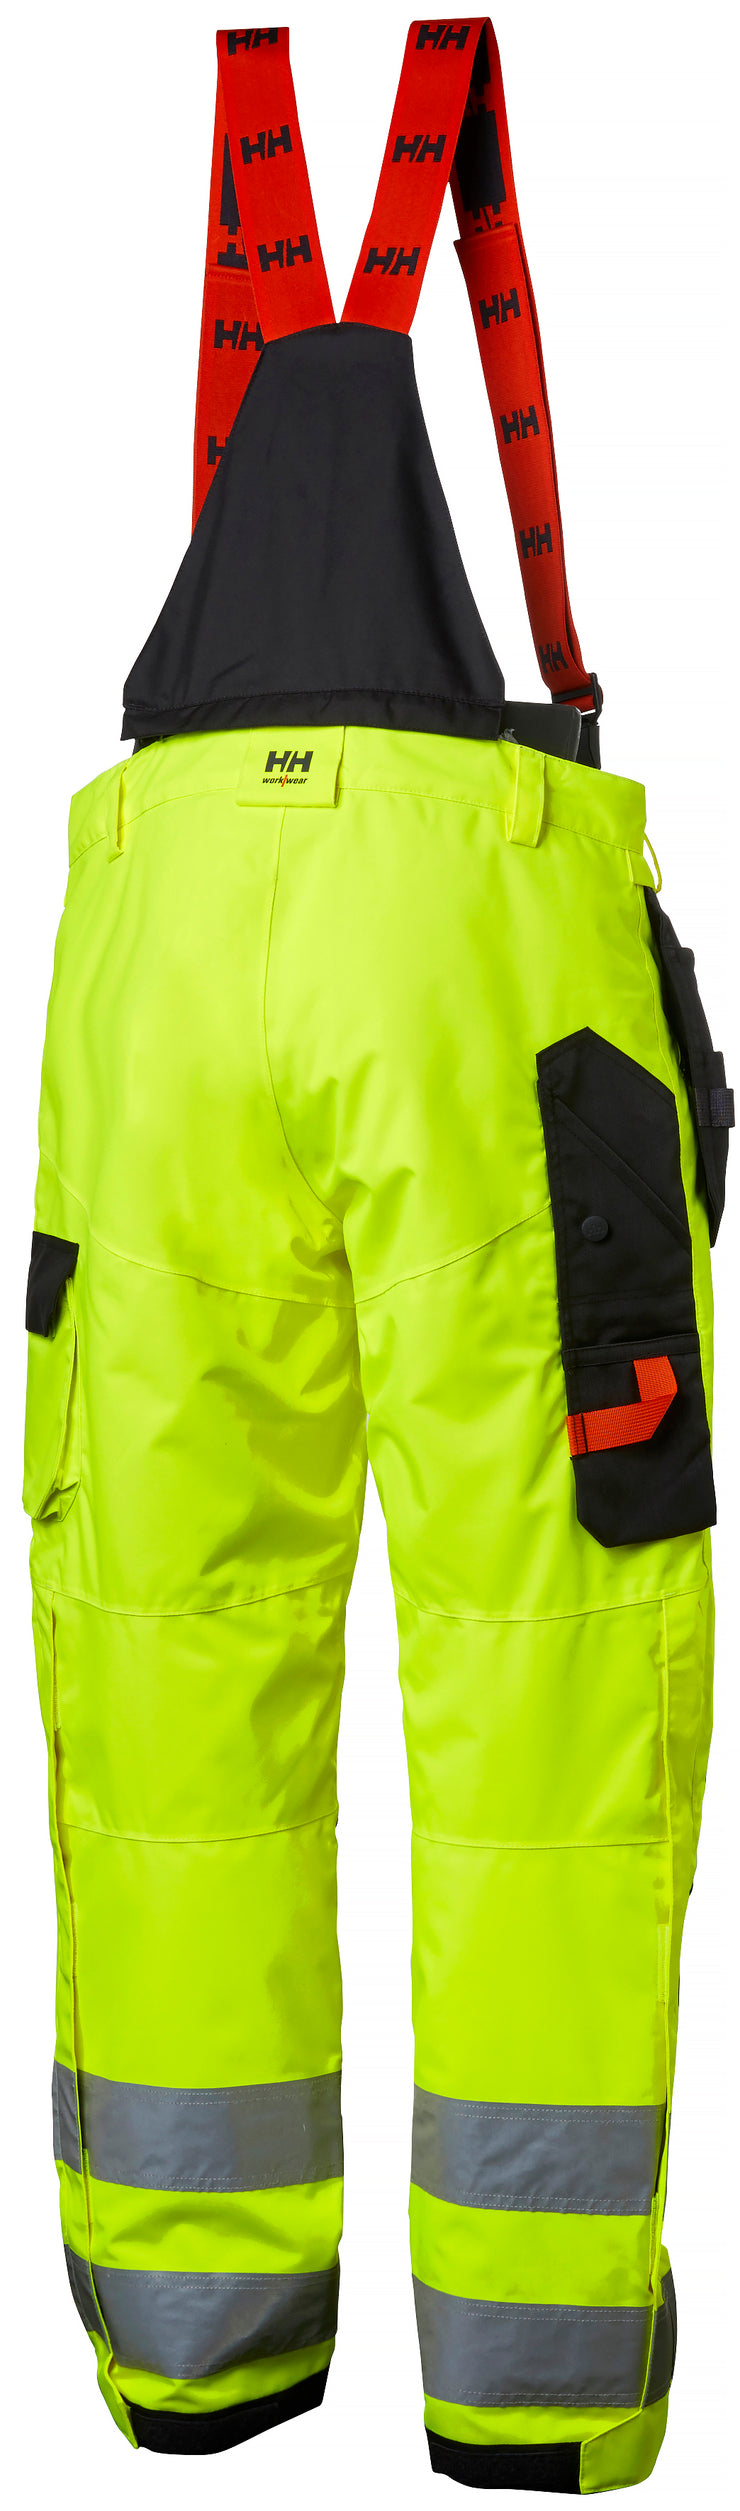 71495 H/H Alna vinter construction pant CL2